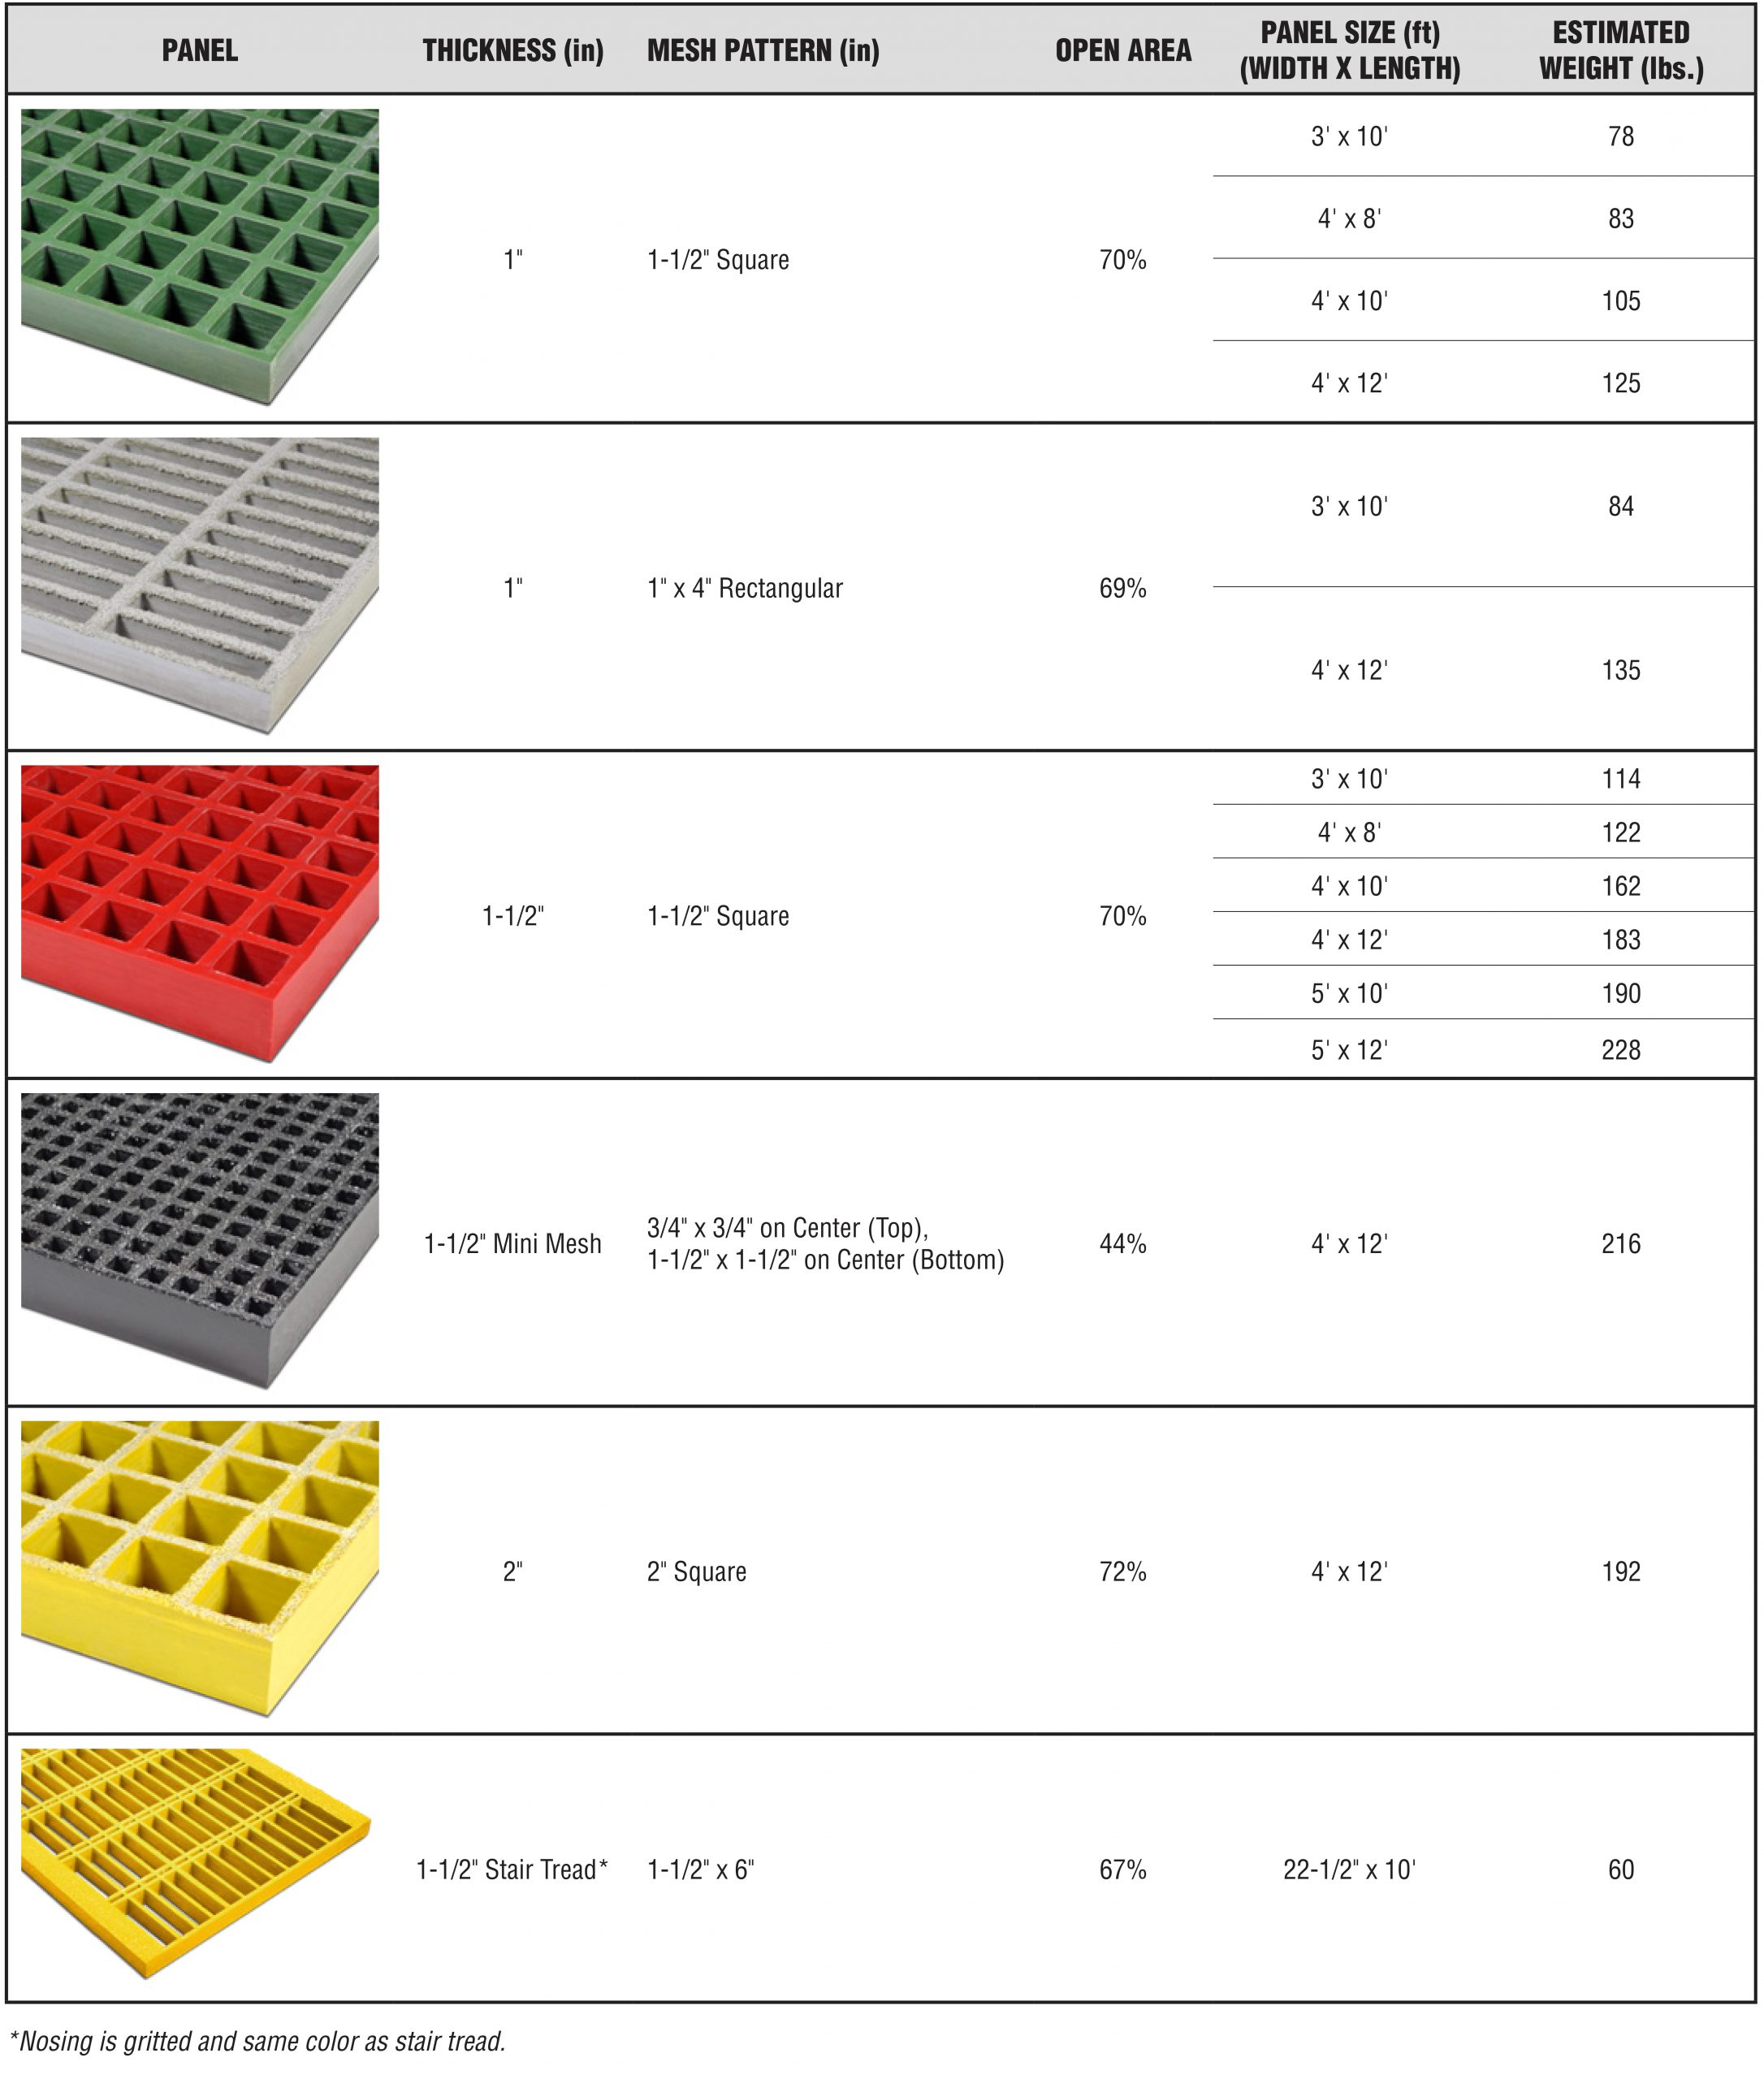 frp molded grating size scaled